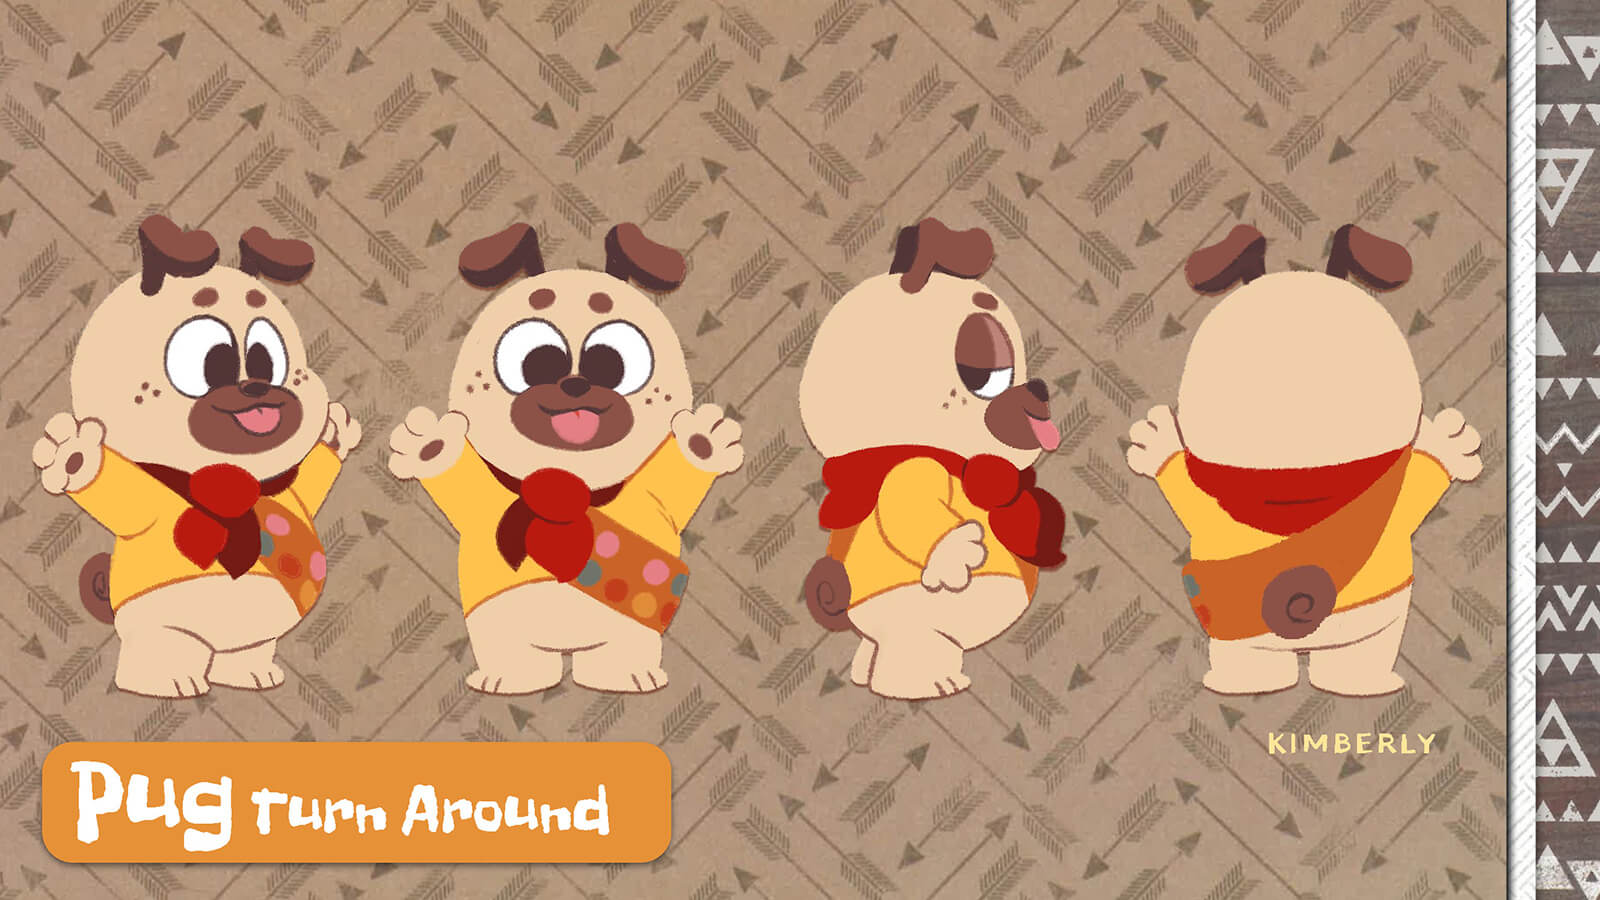 Turnaround of the character Pug.